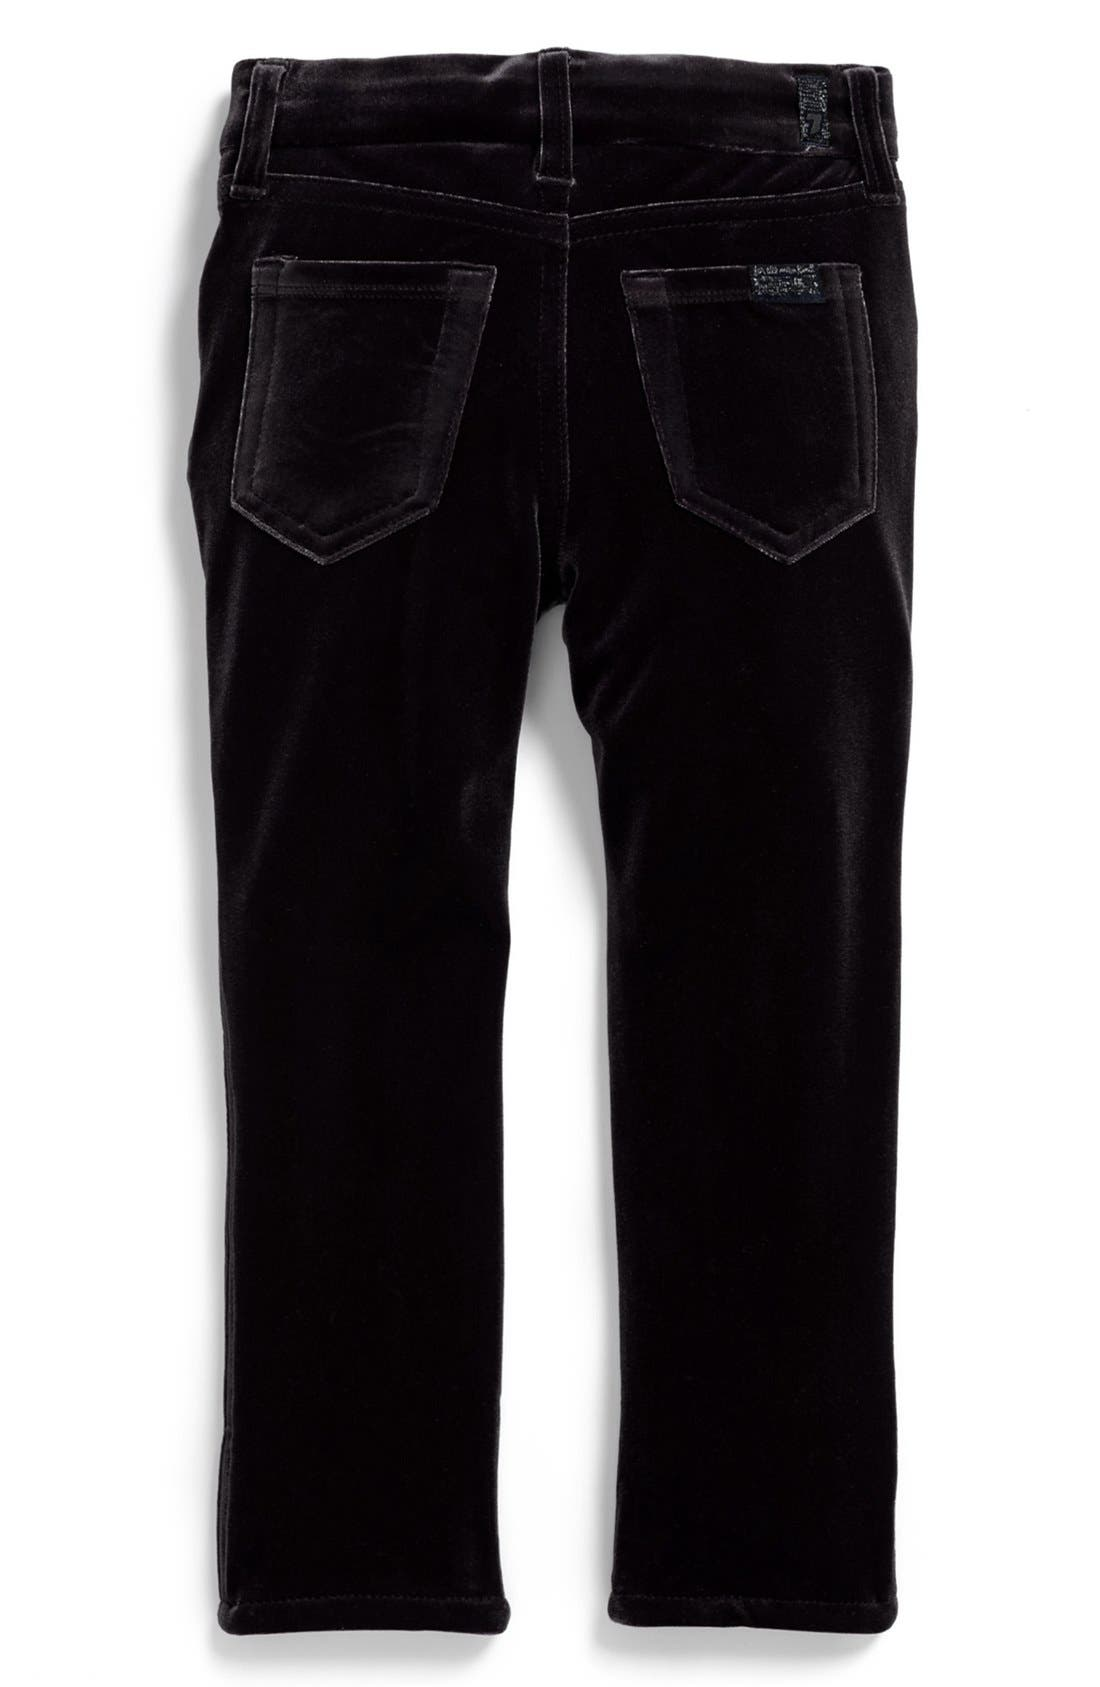 Alternate Image 1 Selected - 7 For All Mankind® 'The Skinny' Stretch Velveteen Jeans (Toddler Girls)